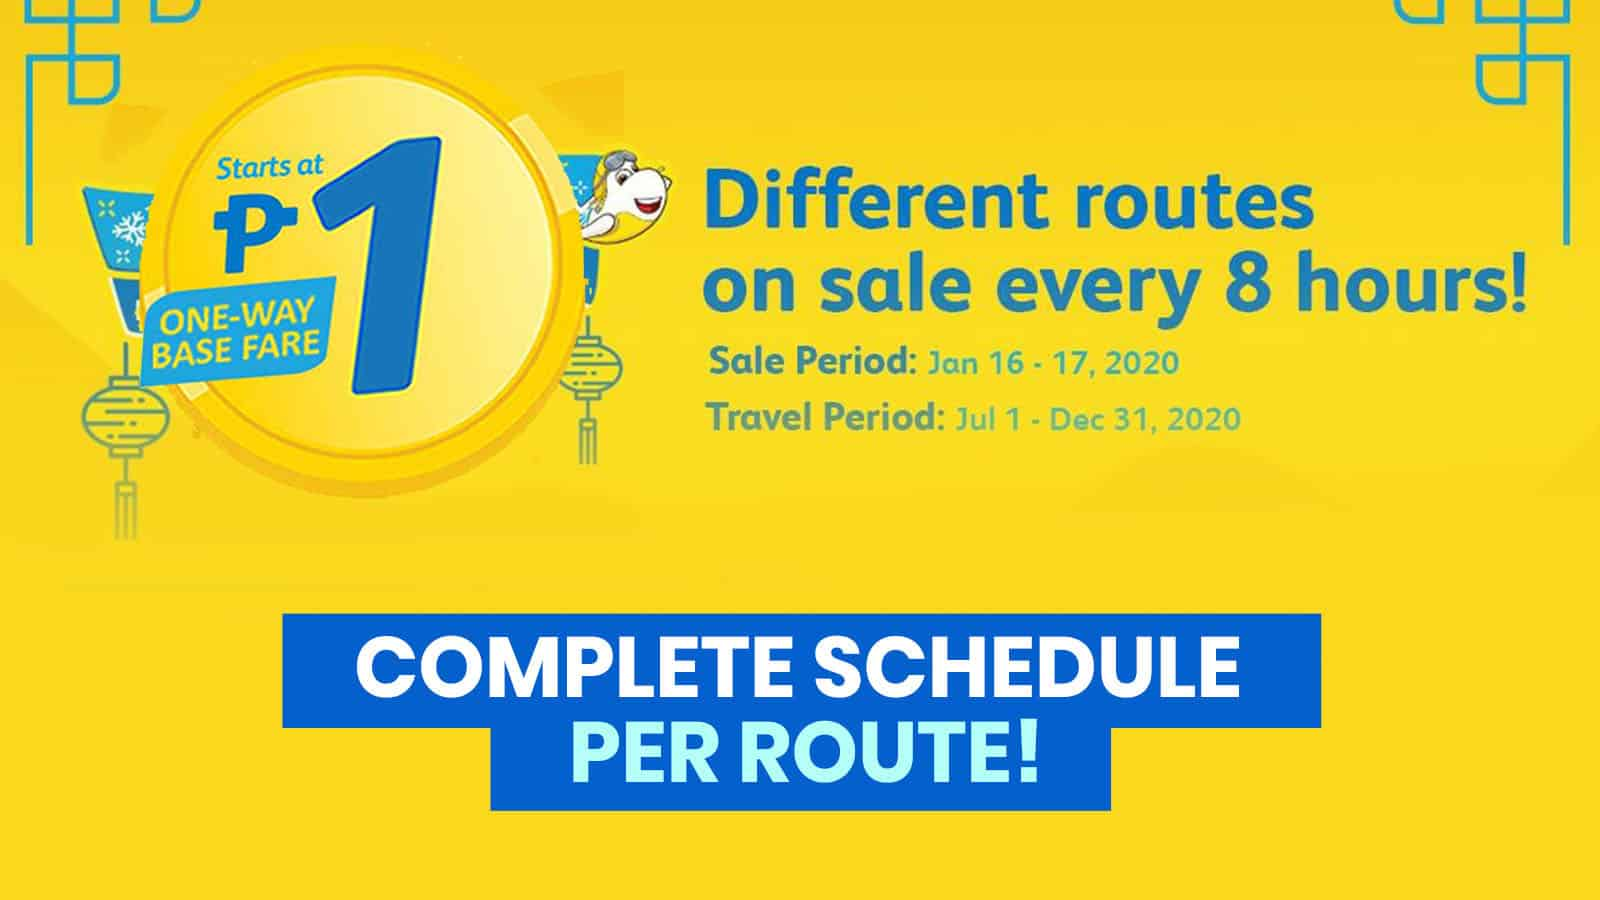 2020 CEBU PACIFIC PROMO & PISO FARE: How to Book Successfully